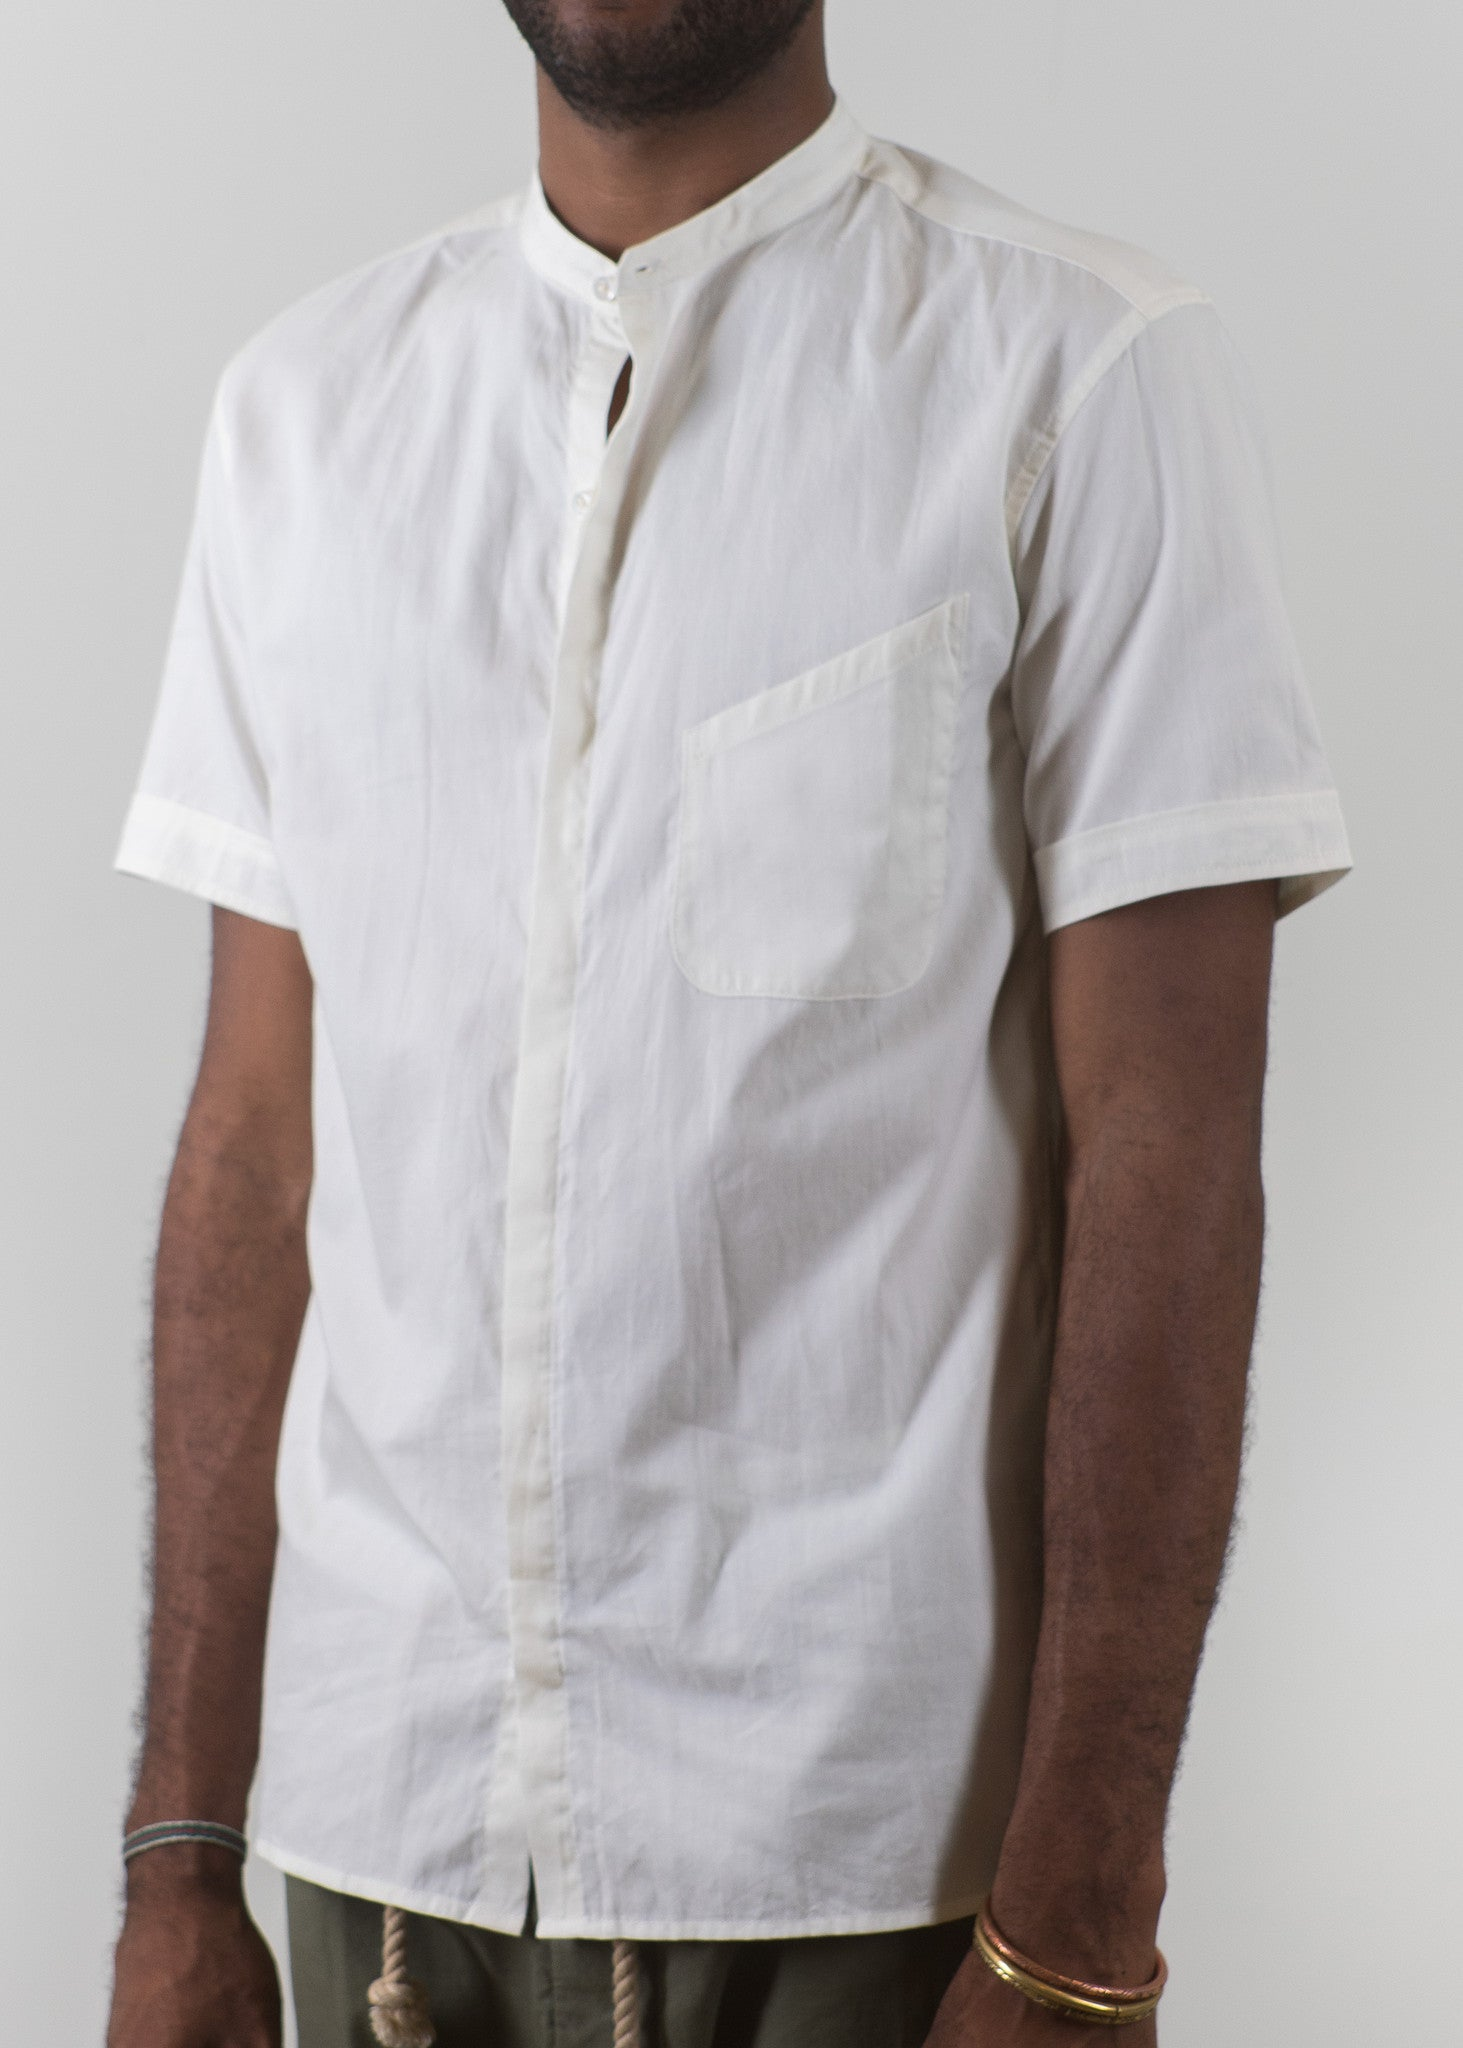 SS Grandad-Collar Shirt - Ecru - New Union Clothing